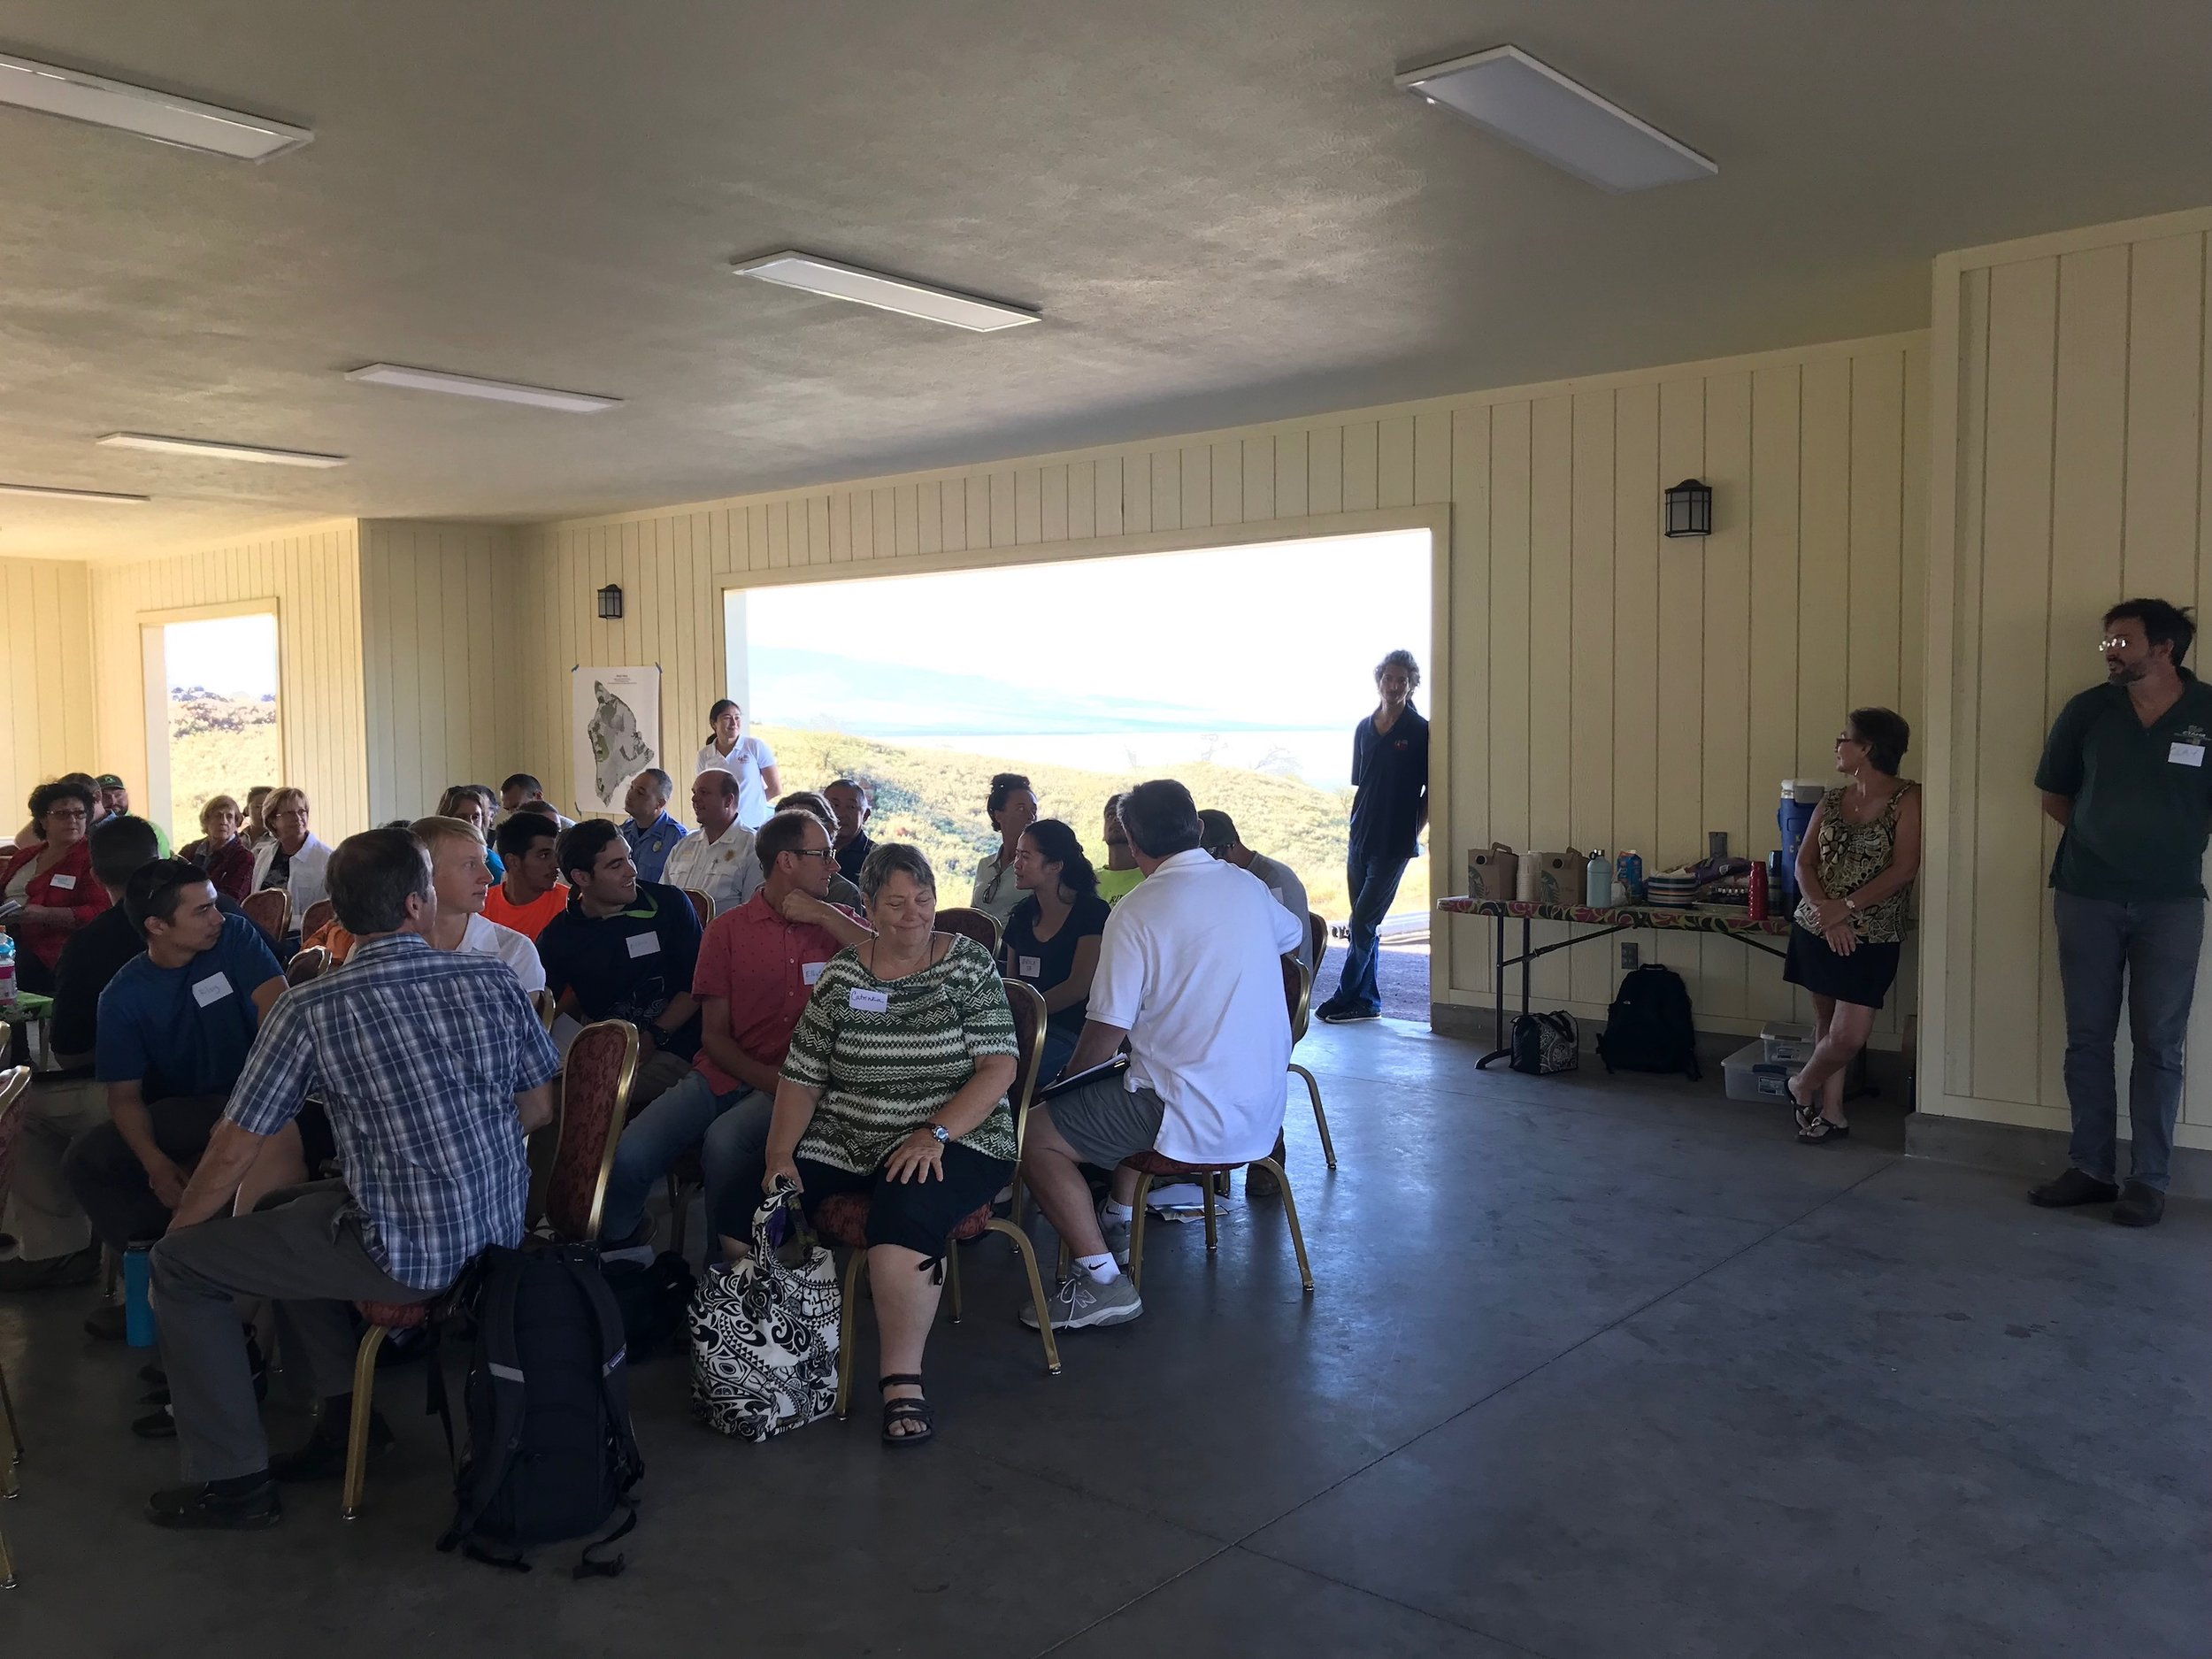 Hawaii Island Kailapa Vegetative Fuels Management Collaborative Action Planning Workshop_2_26_2019_19.jpg